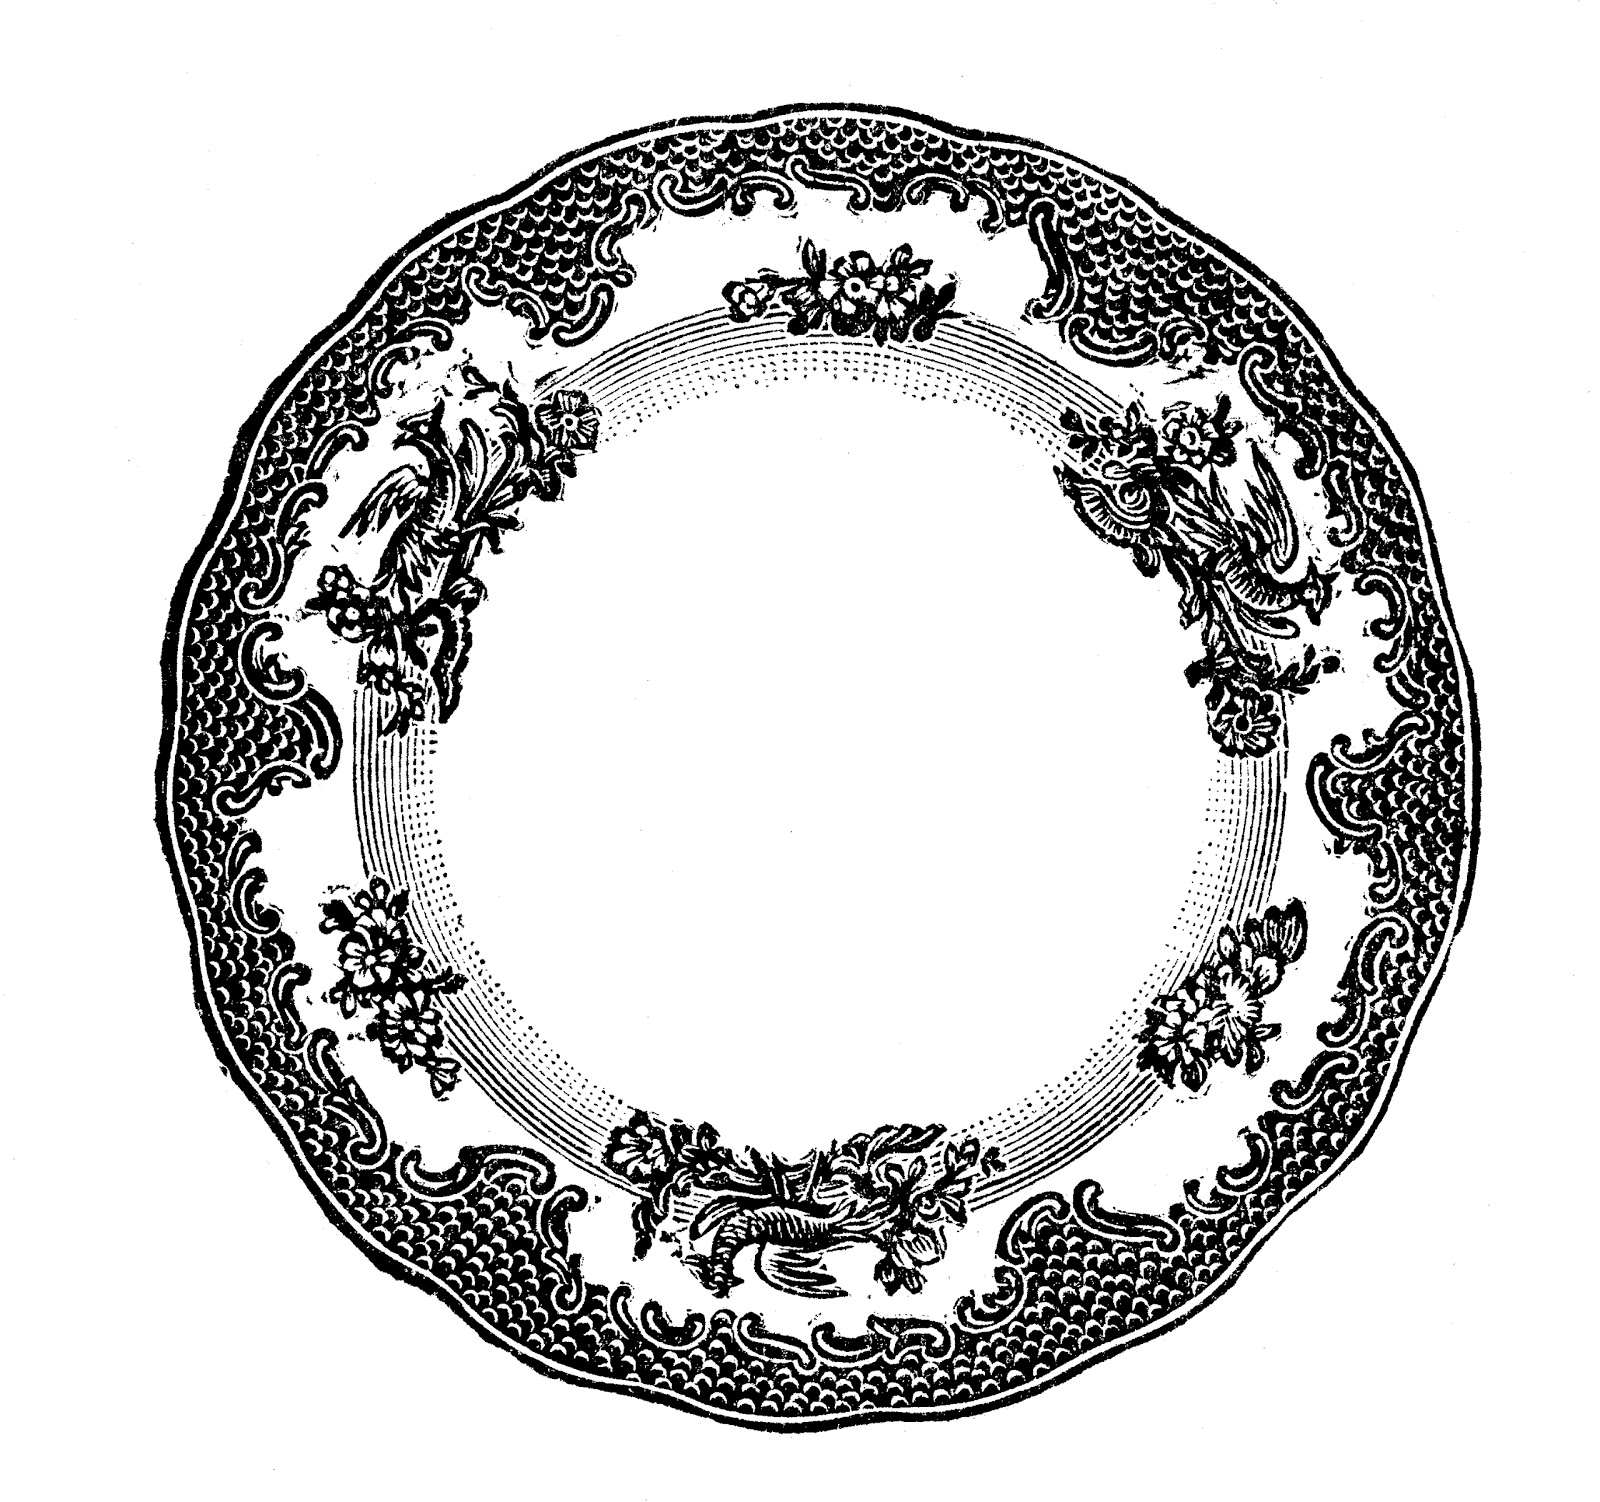 Free vintage clip art images: Vintage plates and dishes clipart.